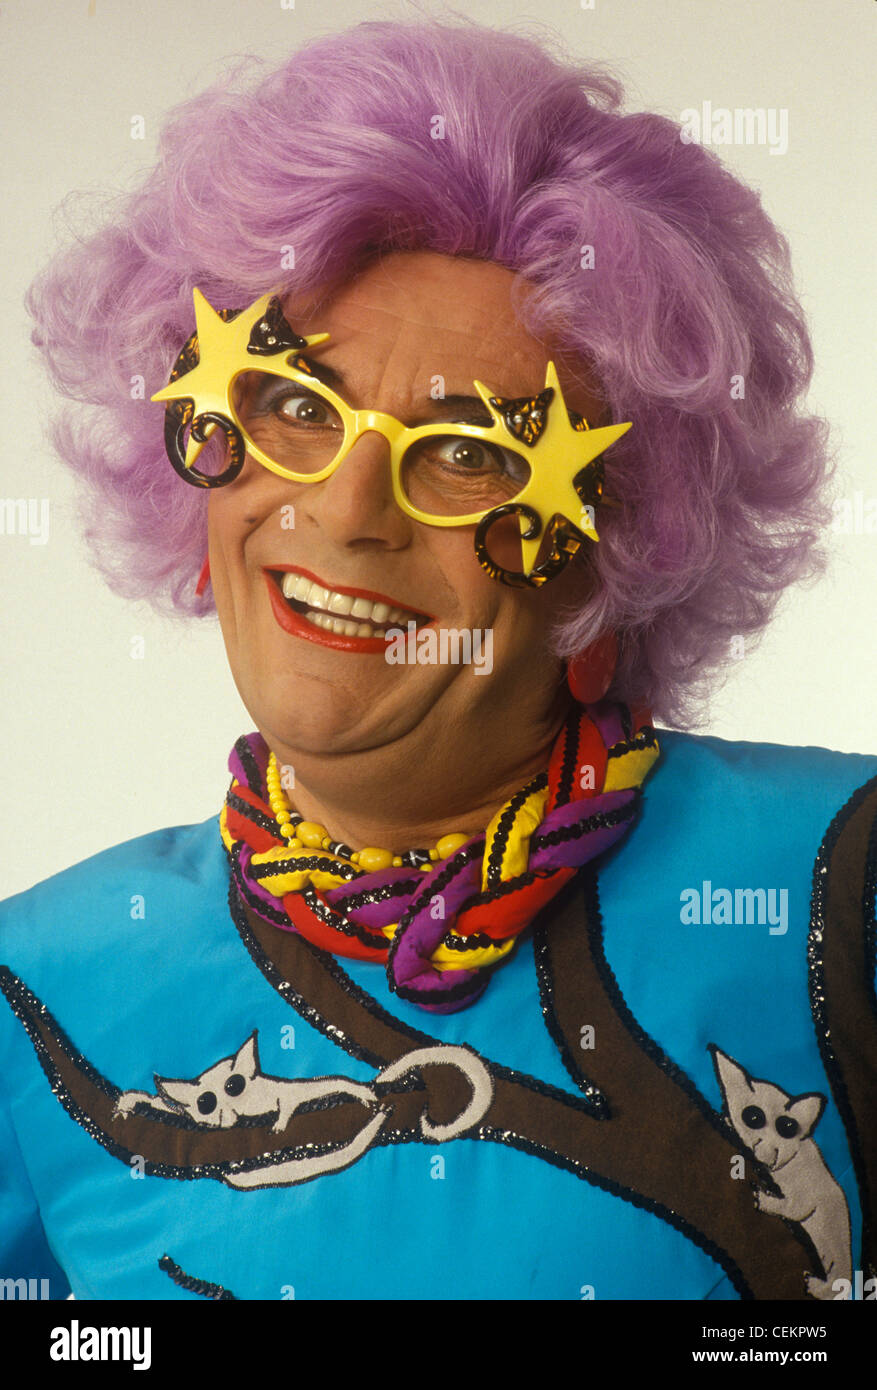 Dame Edna Everage Barry Humphries. HOMER SYKES ARCHIVE - Stock Image